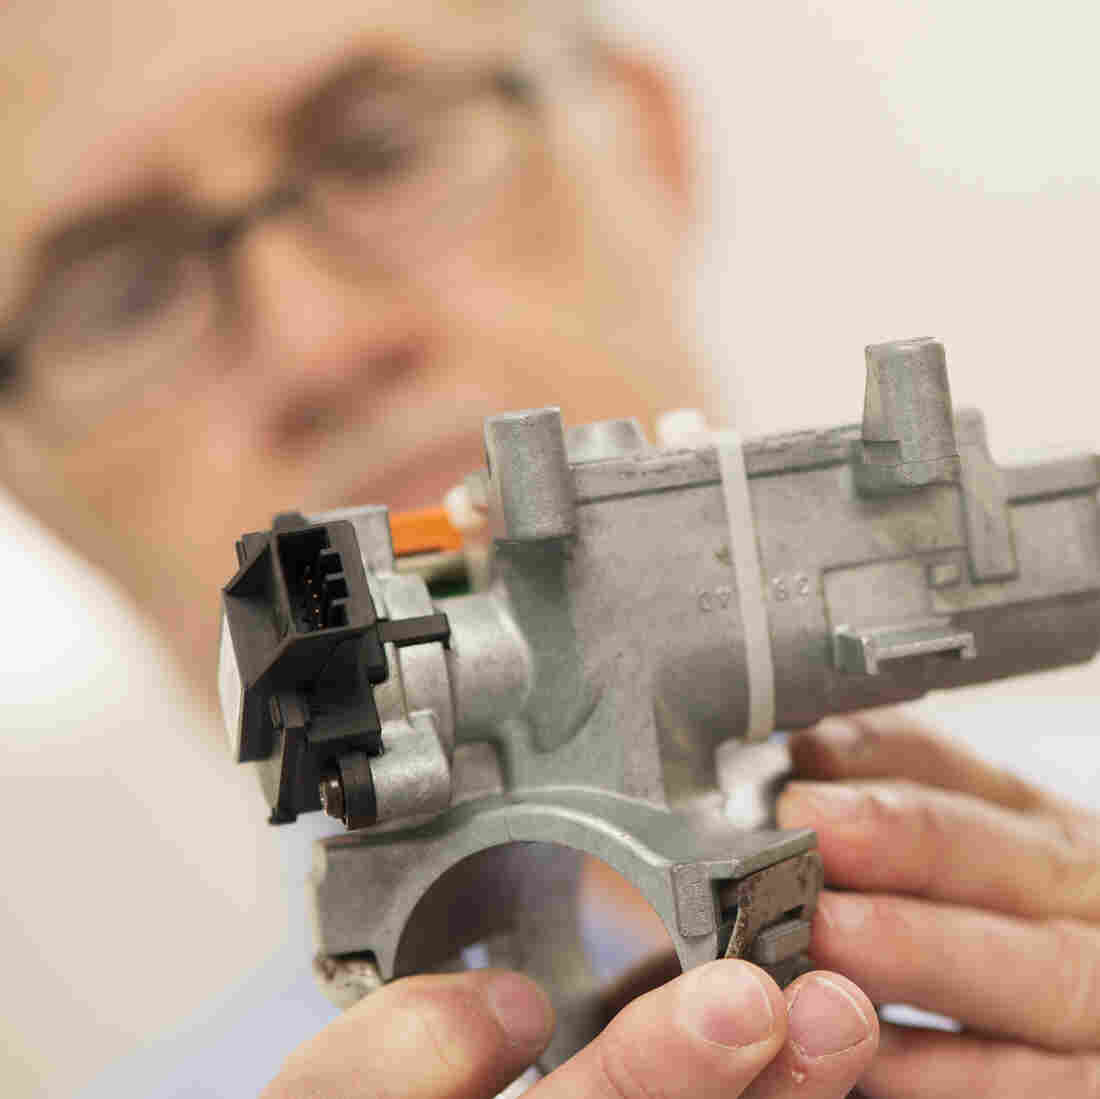 Consulting materials engineer Mark Hood shows the ignition assembly that has a faulty ignition switch (black piece at left), in the mechanical testing laboratory at McSwain Engineering Inc. in Pensacola, Fla. The firm helped to conduct the engineering investigations and failure analysis that resulted in the GM recall.